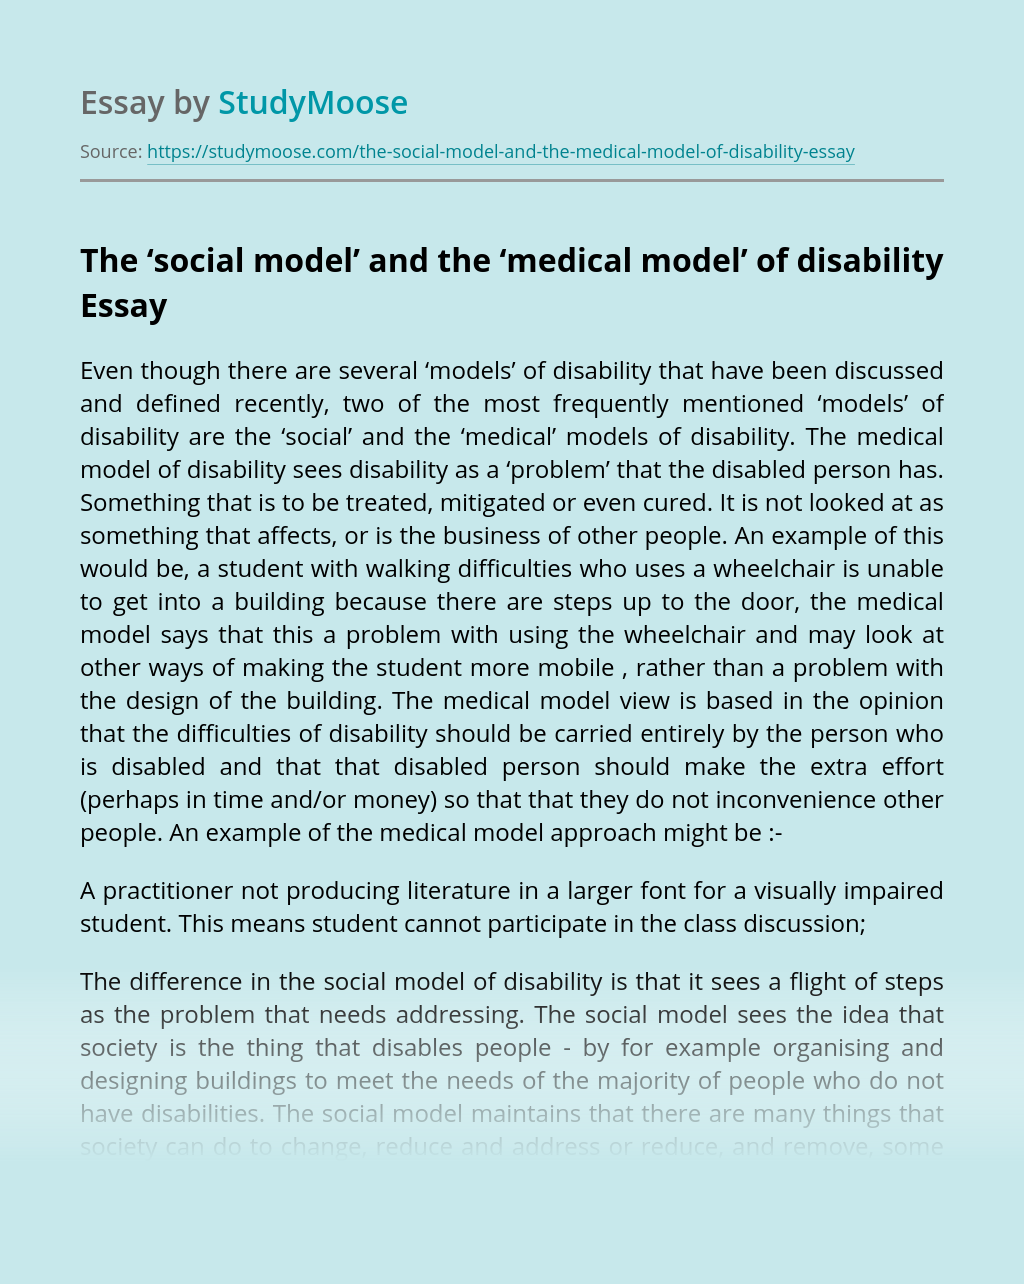 The 'social model' and the 'medical model' of disability